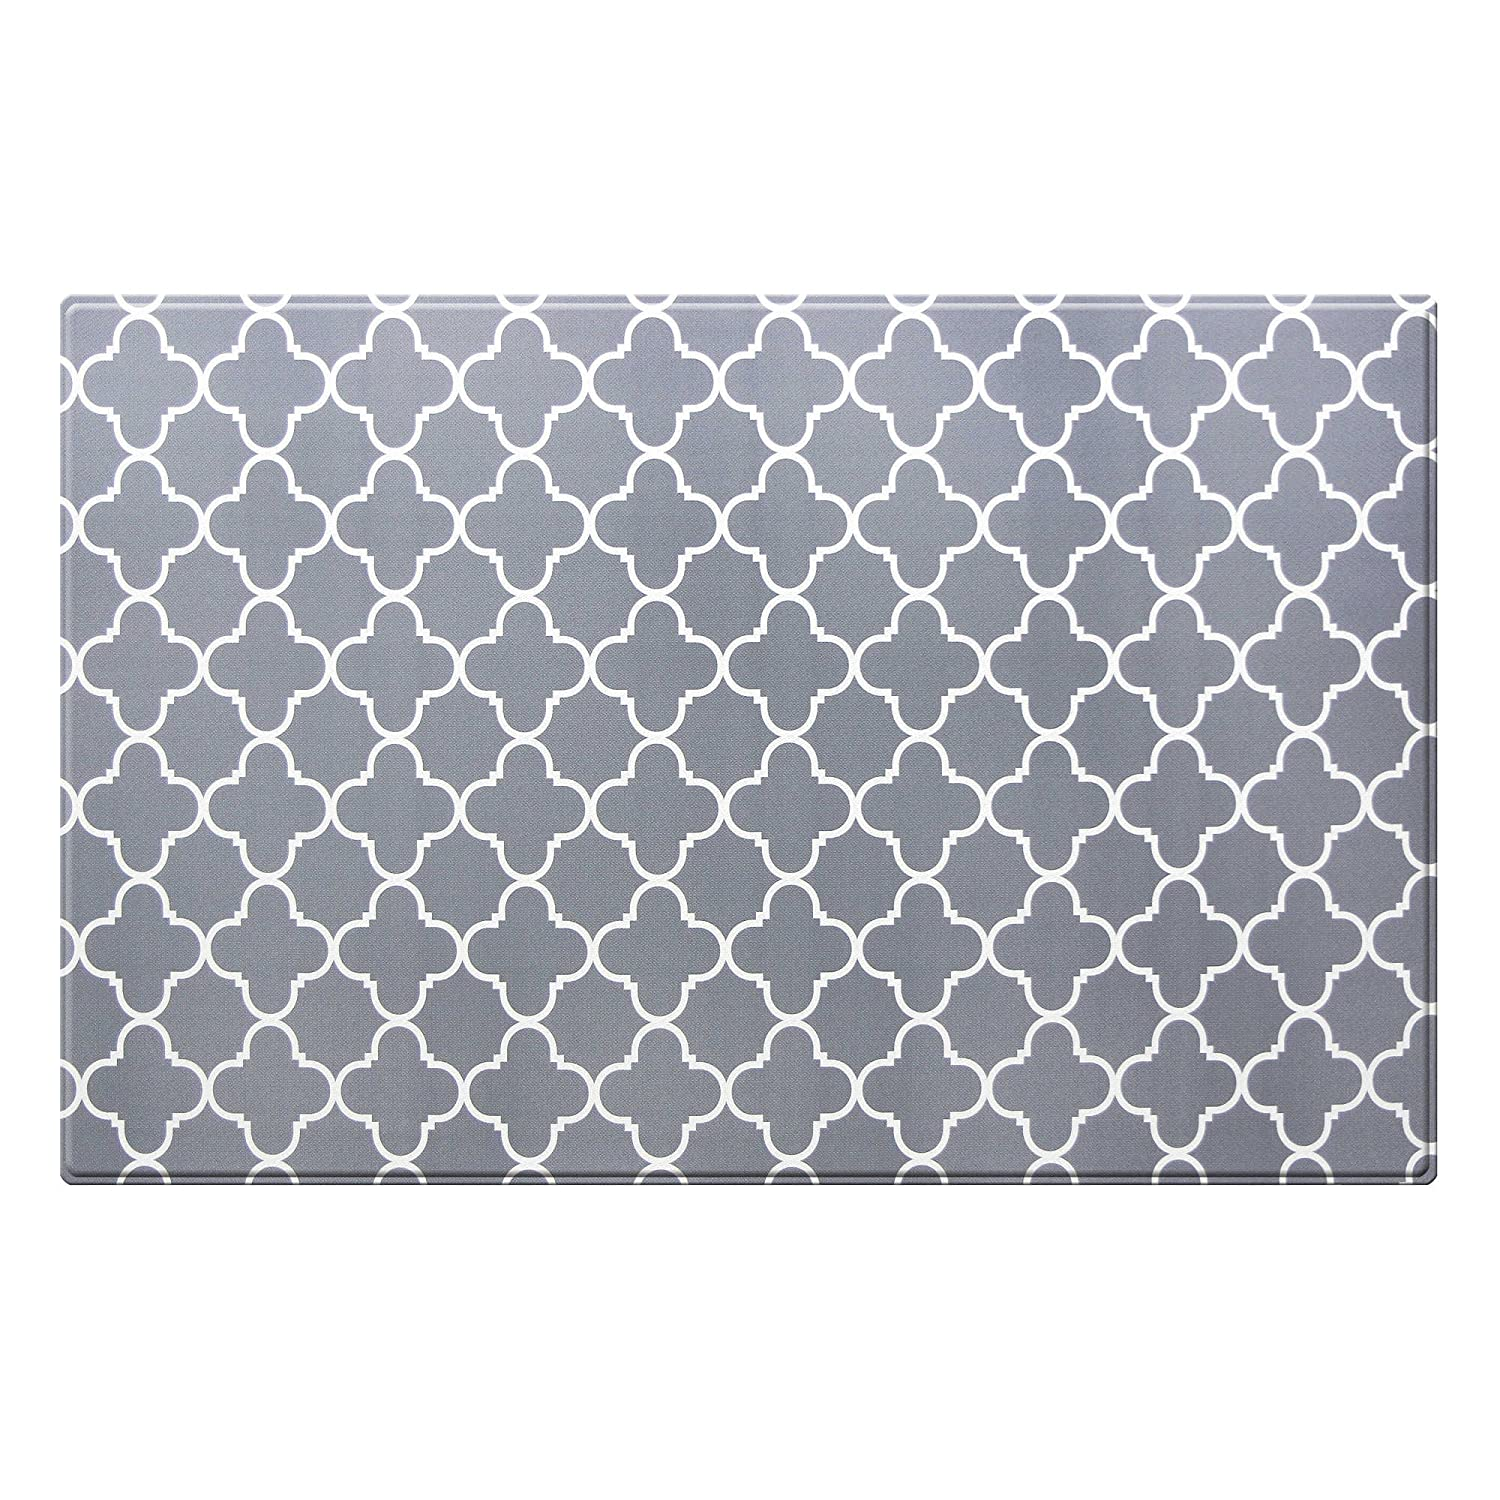 Babycare Baby Reversible Playmat in Renaissance